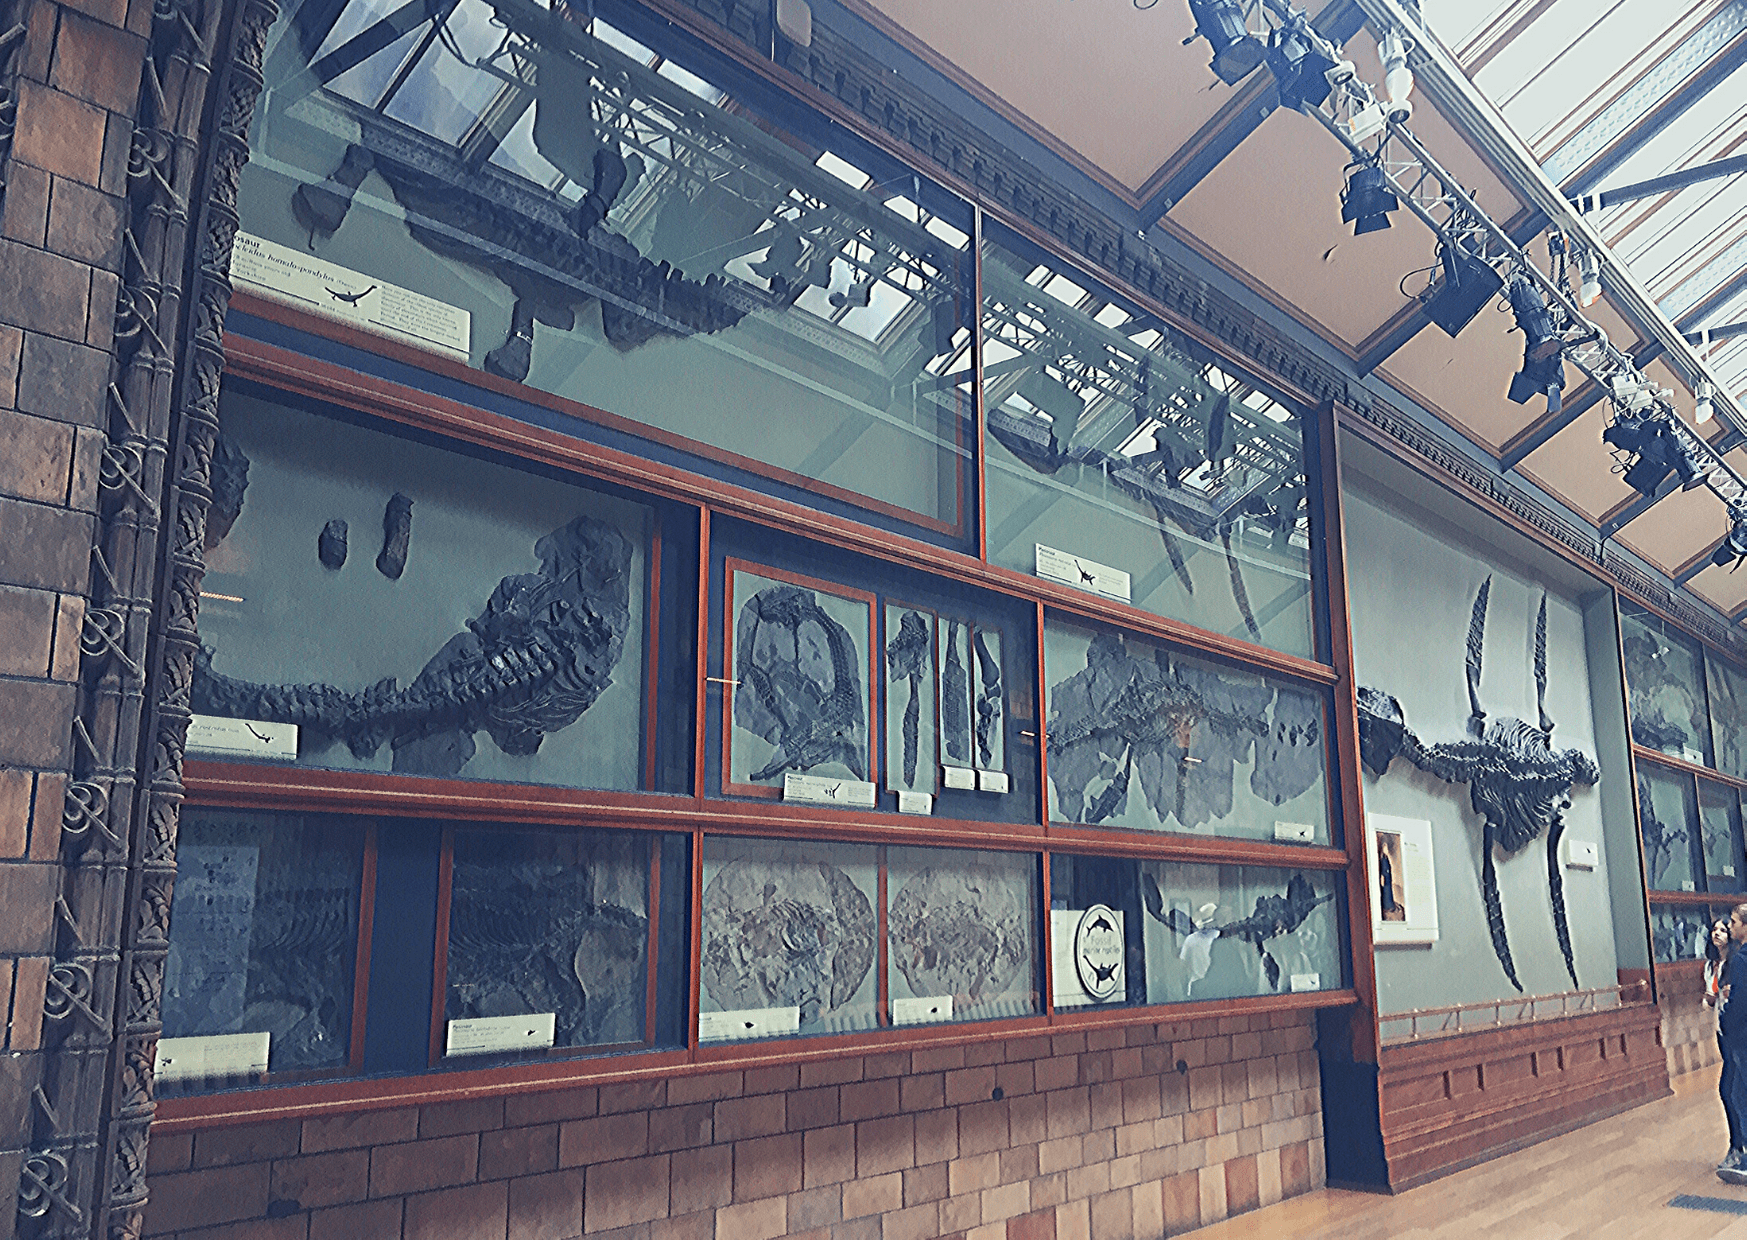 Some of Mary Anning's discoveries: the plesiosaur and other prehistoric aquatic reptiles on display at the Natural History Museum